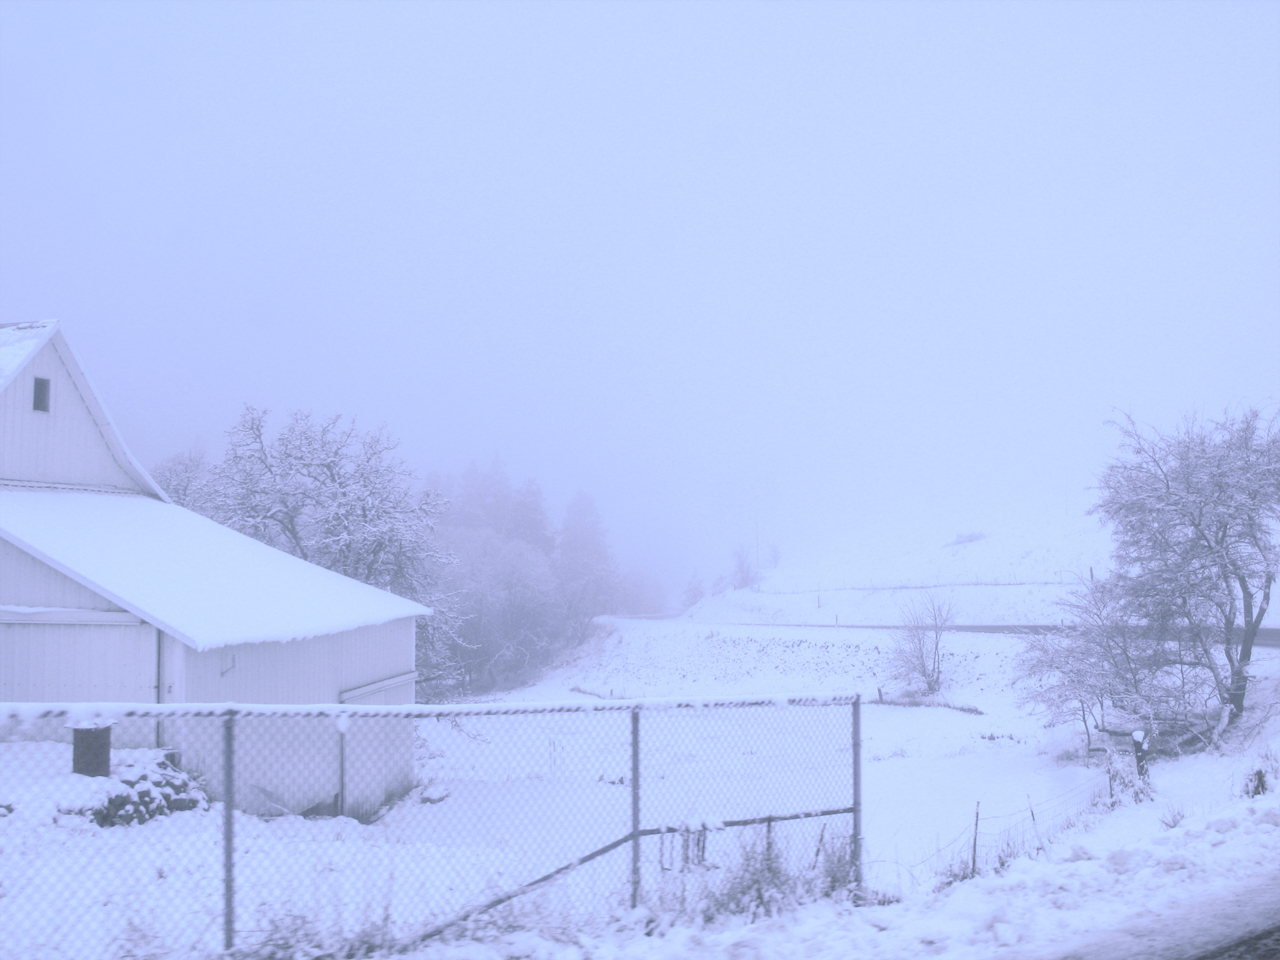 mosier, oregon in winter of 2012